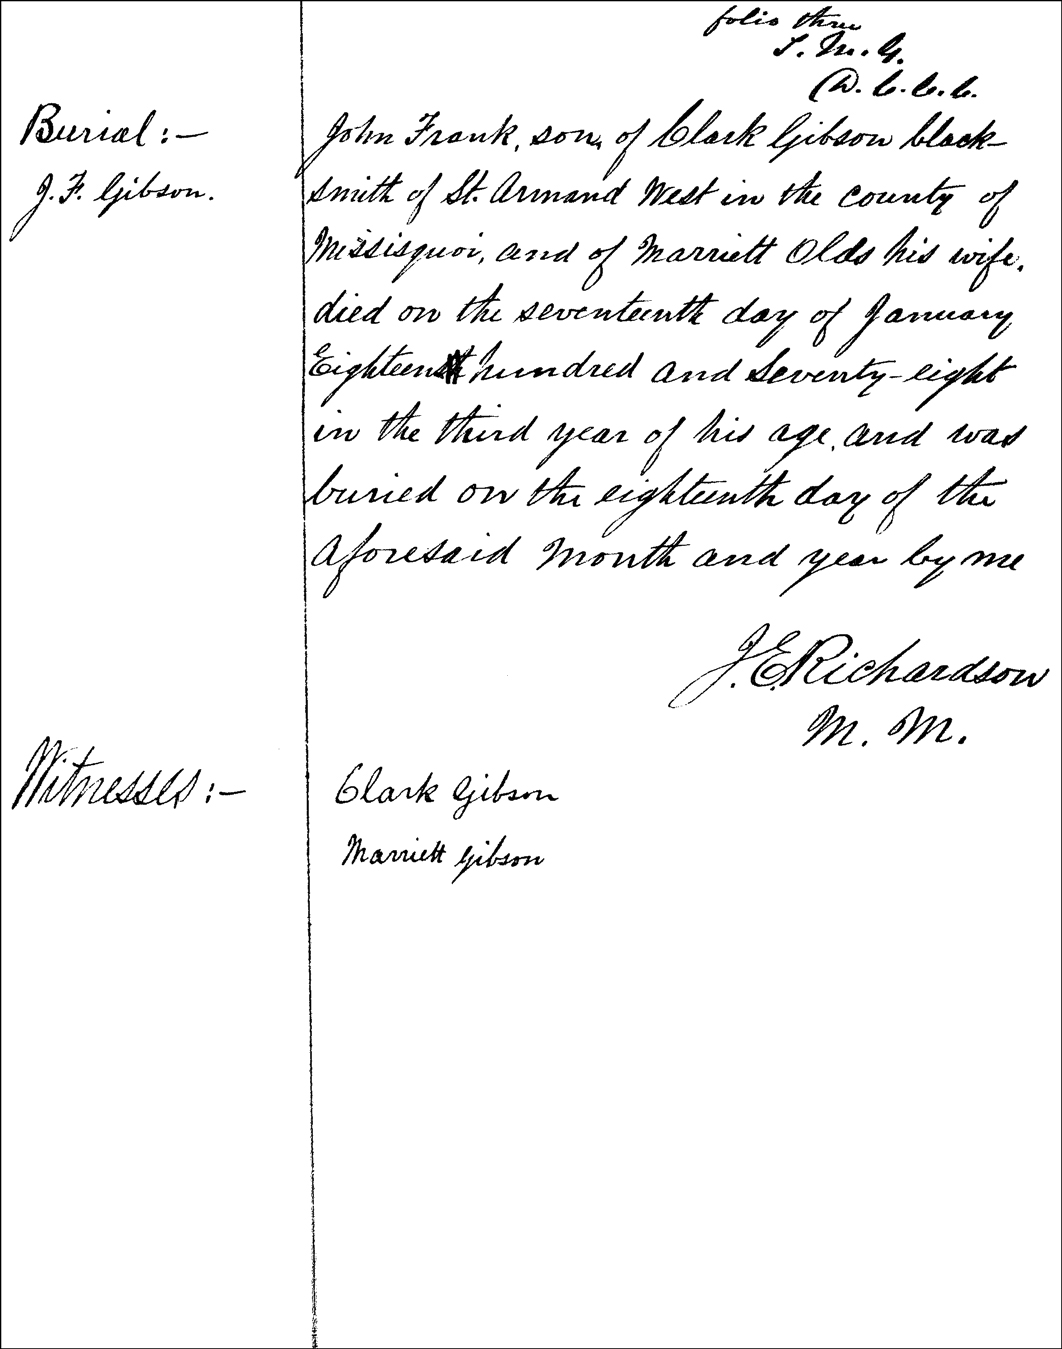 Burial Record for John Frank Gibson